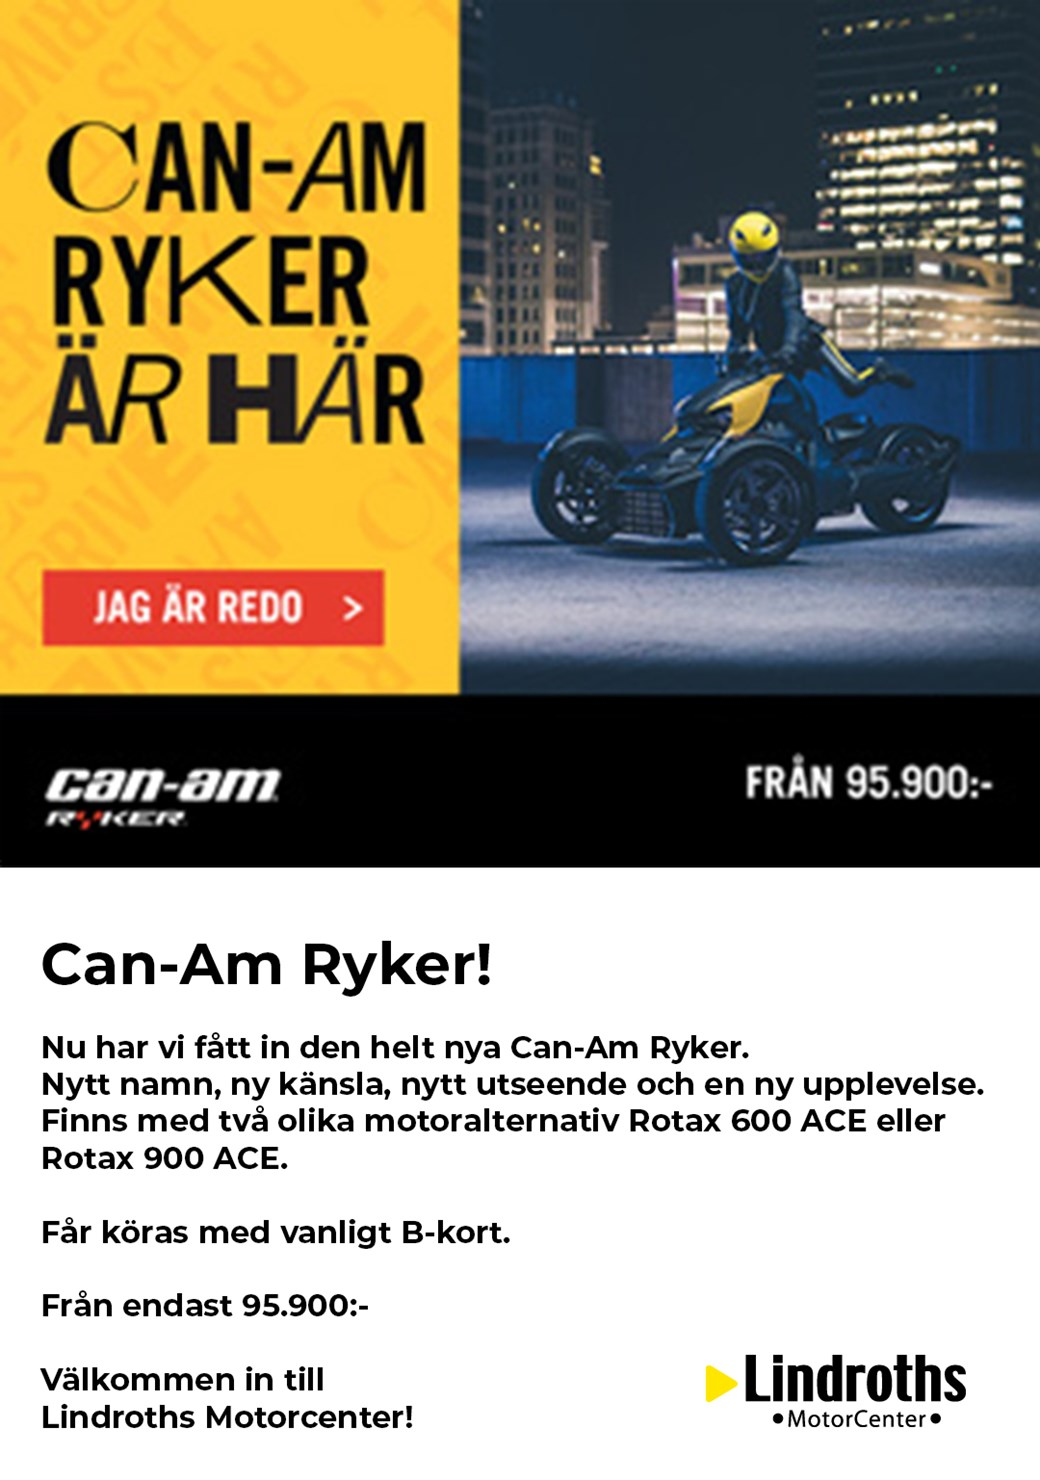 Can-Am Ryker!